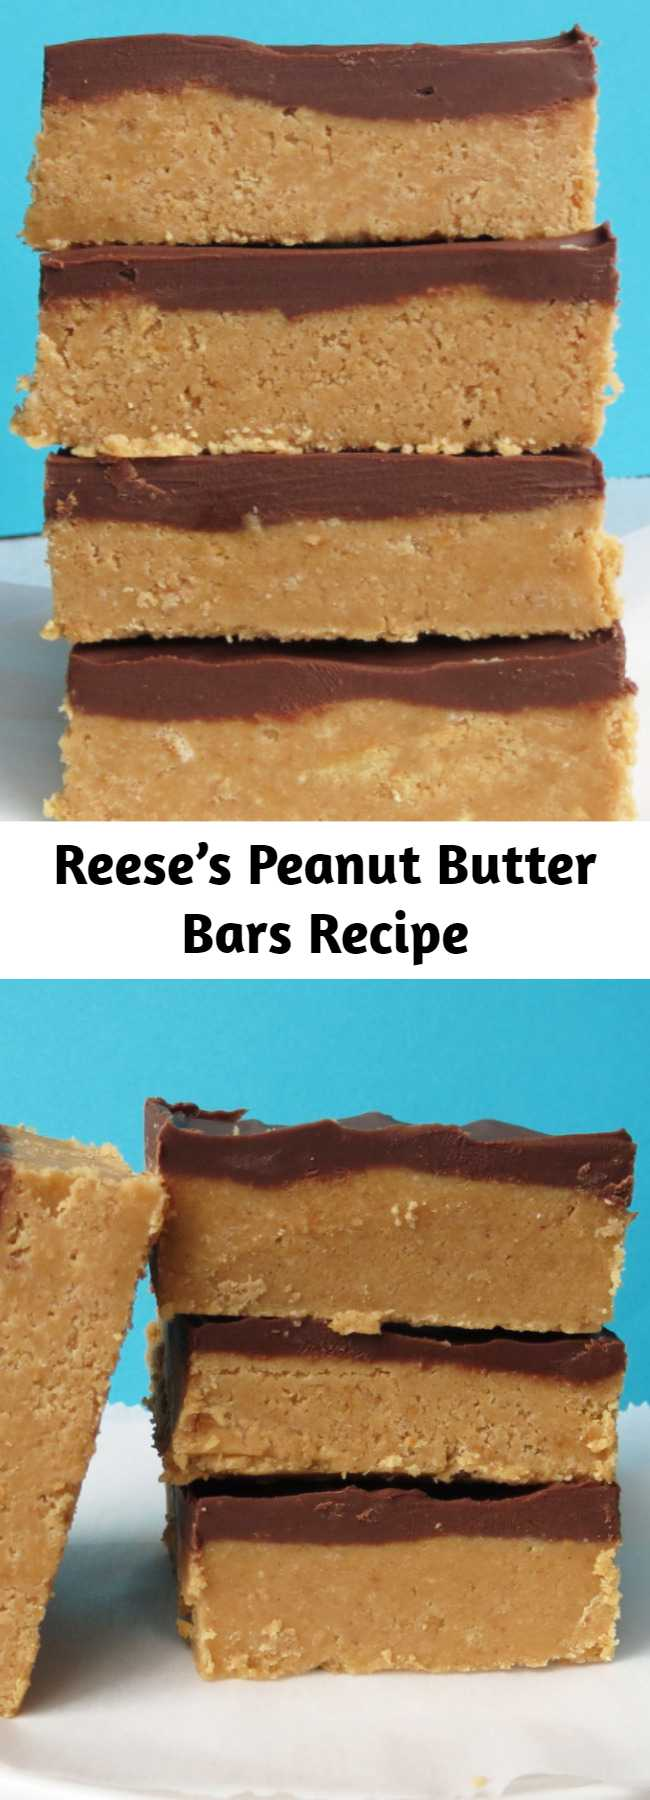 Reese's Peanut Butter Bars Recipe - They taste EXACTLY like a Reese's, but something about them being homemade just makes them better. No bake, no mess, no fuss.  I had these cooling in the fridge less than 10 minutes after I started making them. I only dirtied one bowl.